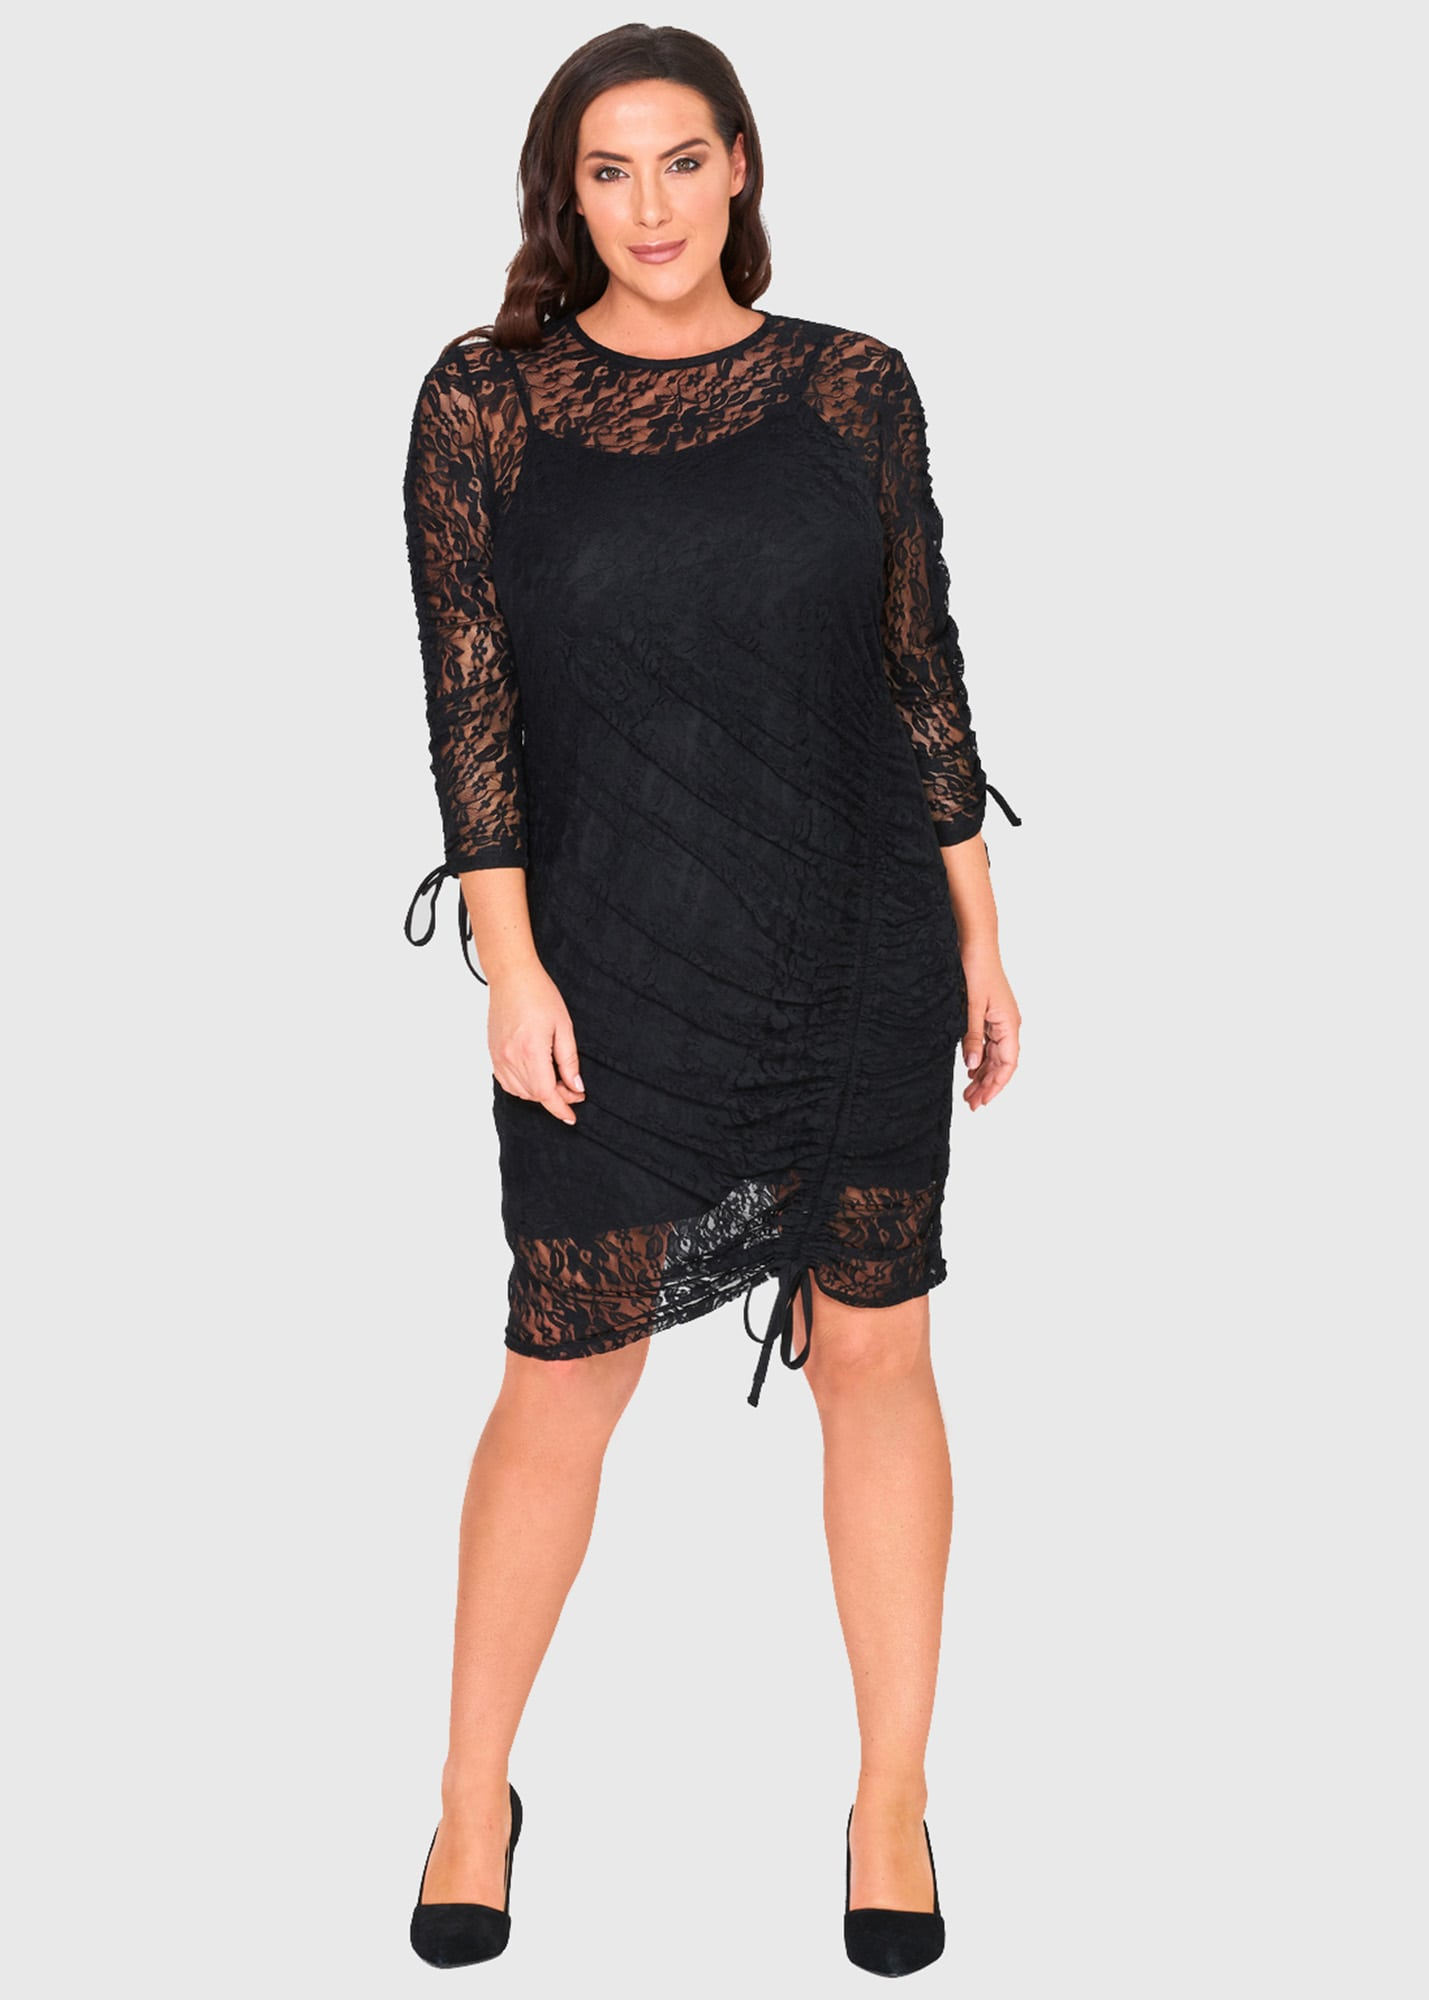 Photo №3 Edvige Plus Size dress